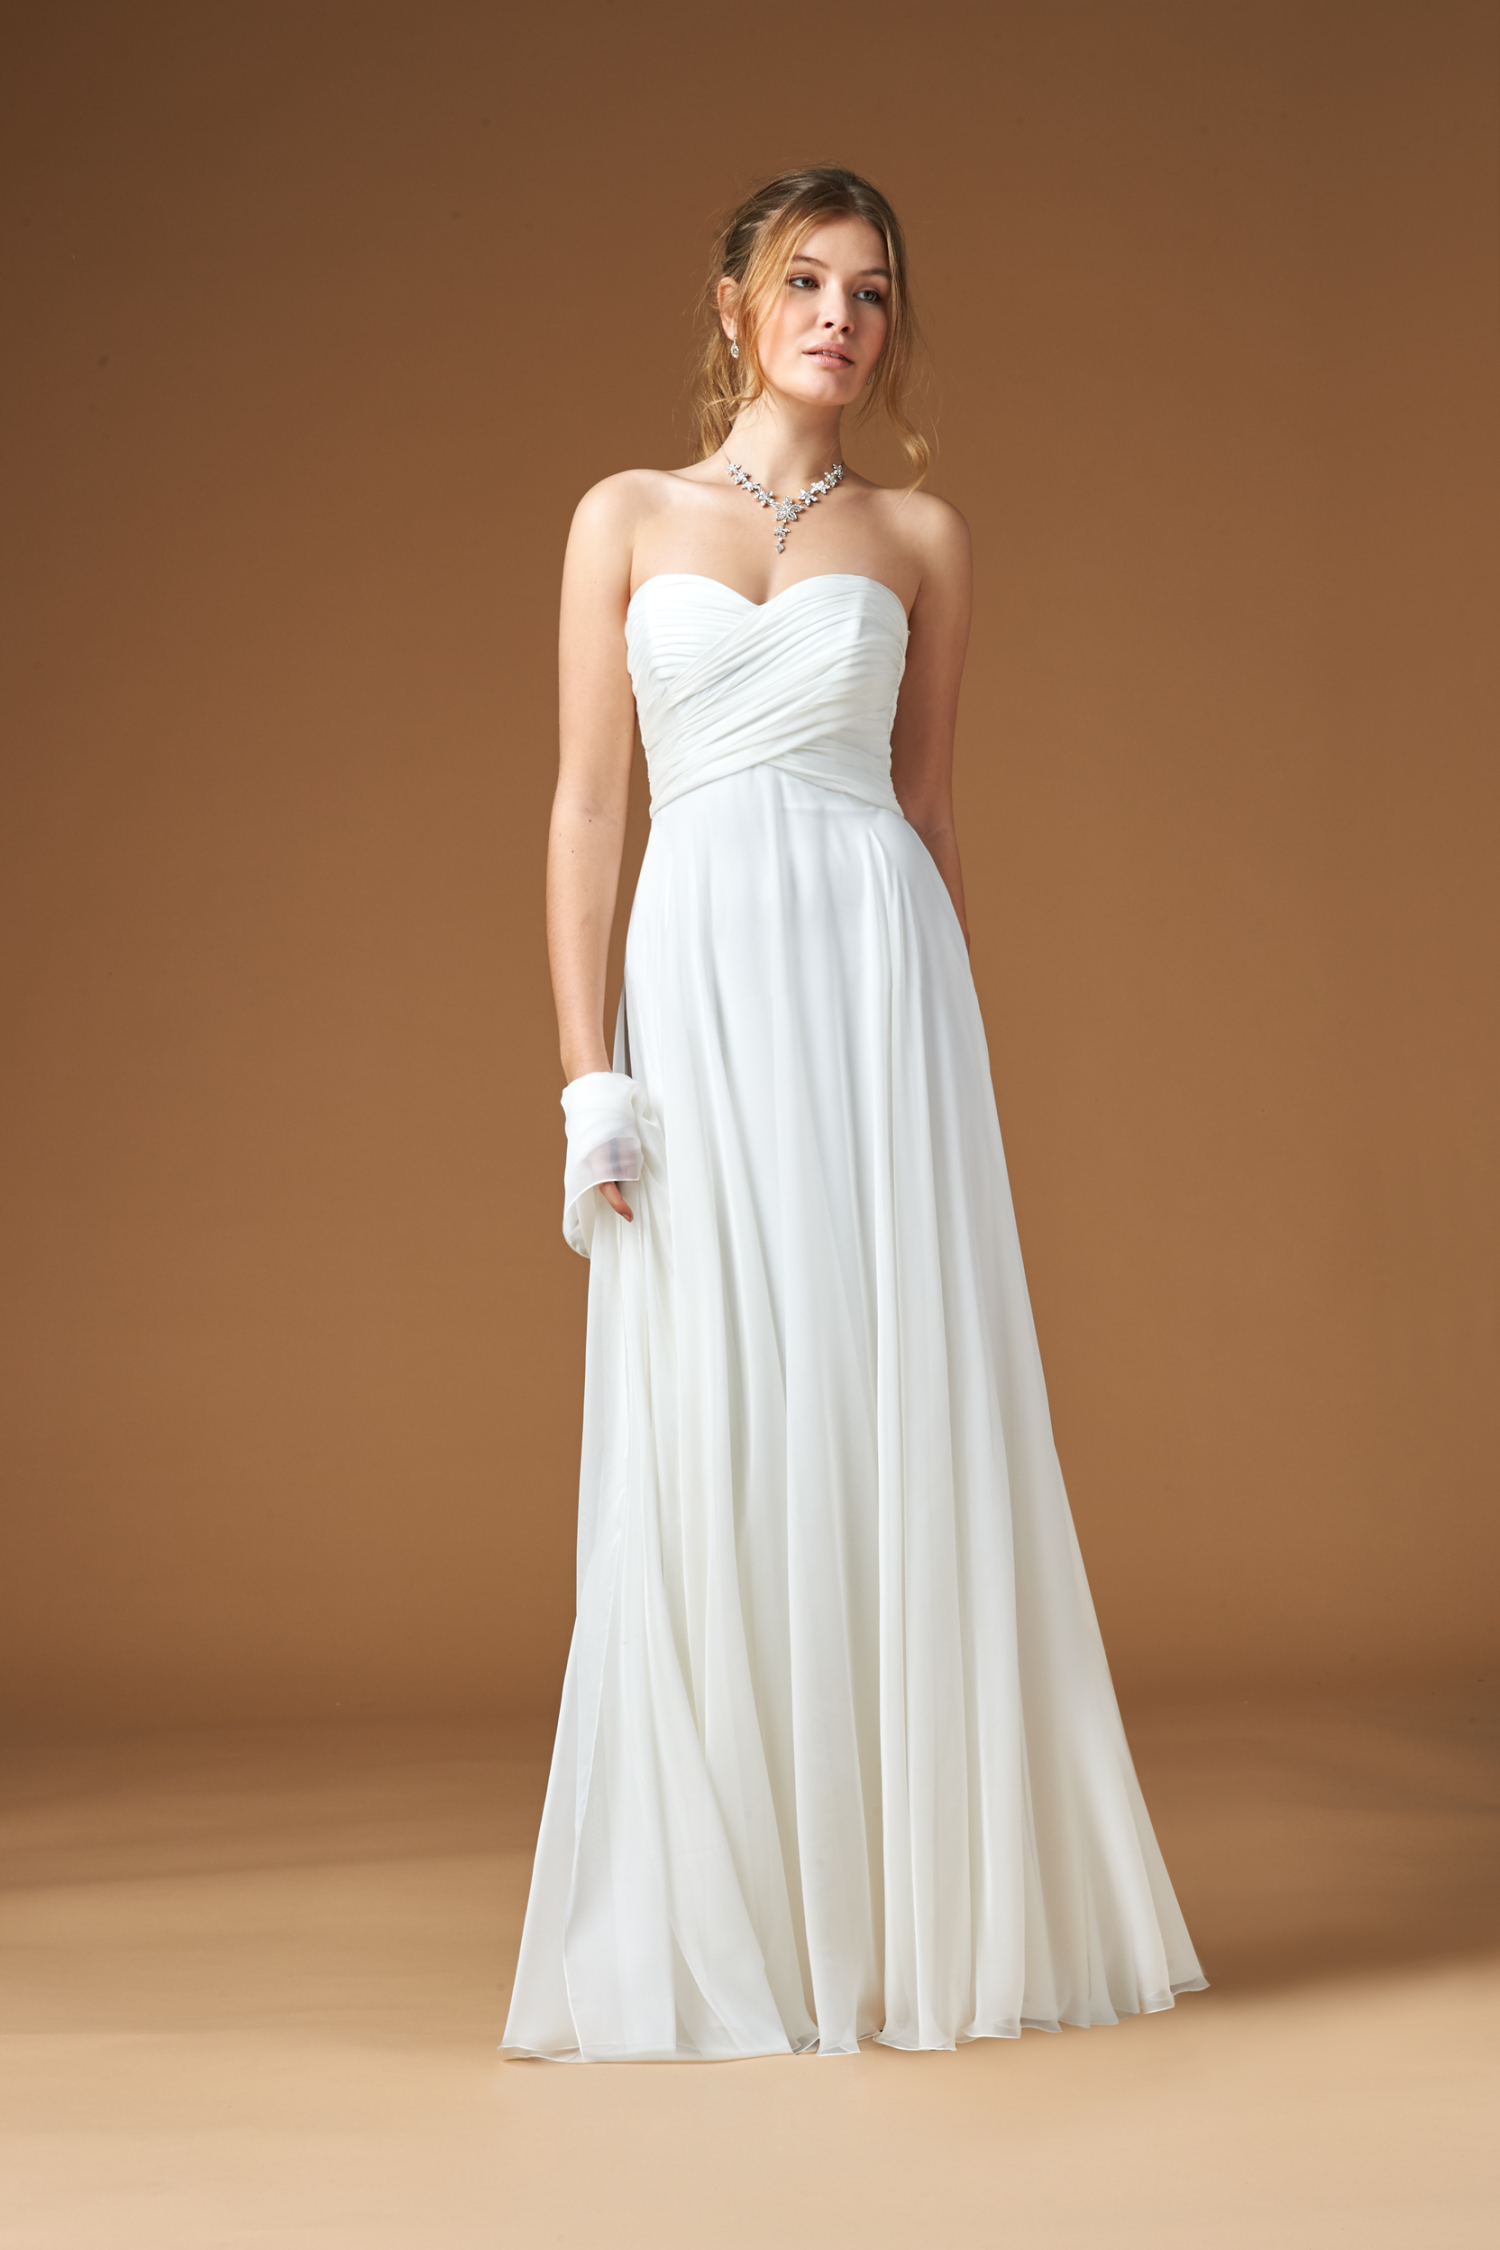 Chiffon beach wedding dresses uk cheap wedding dresses for Beach chiffon wedding dress